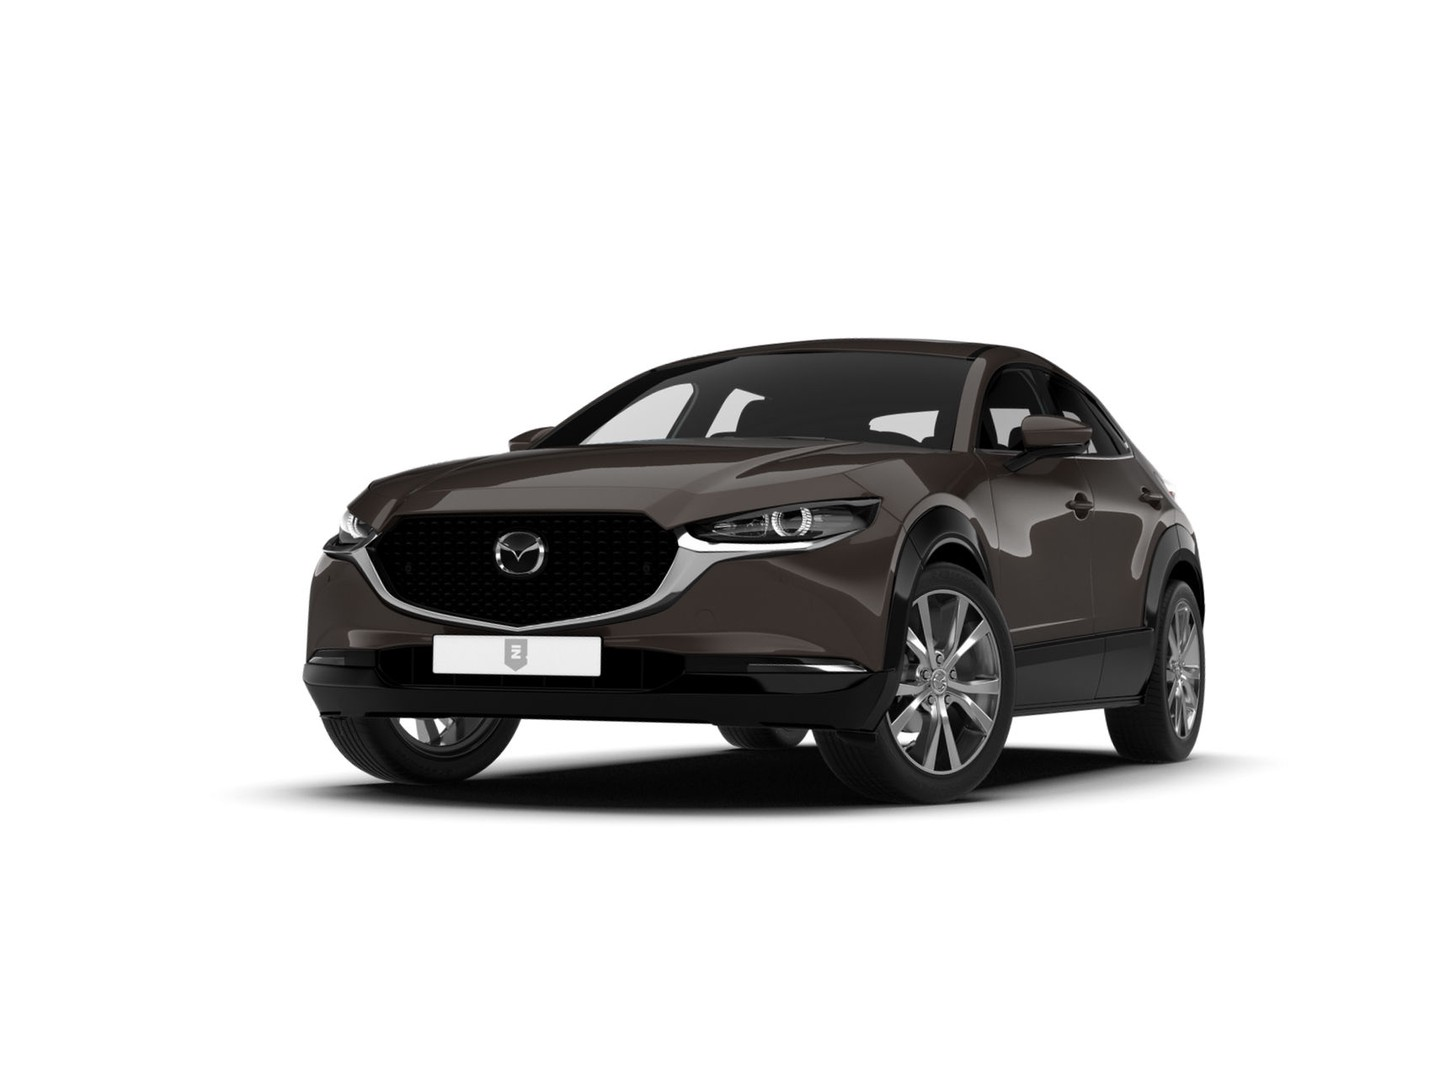 Mazda Cx-30 Luxury suv